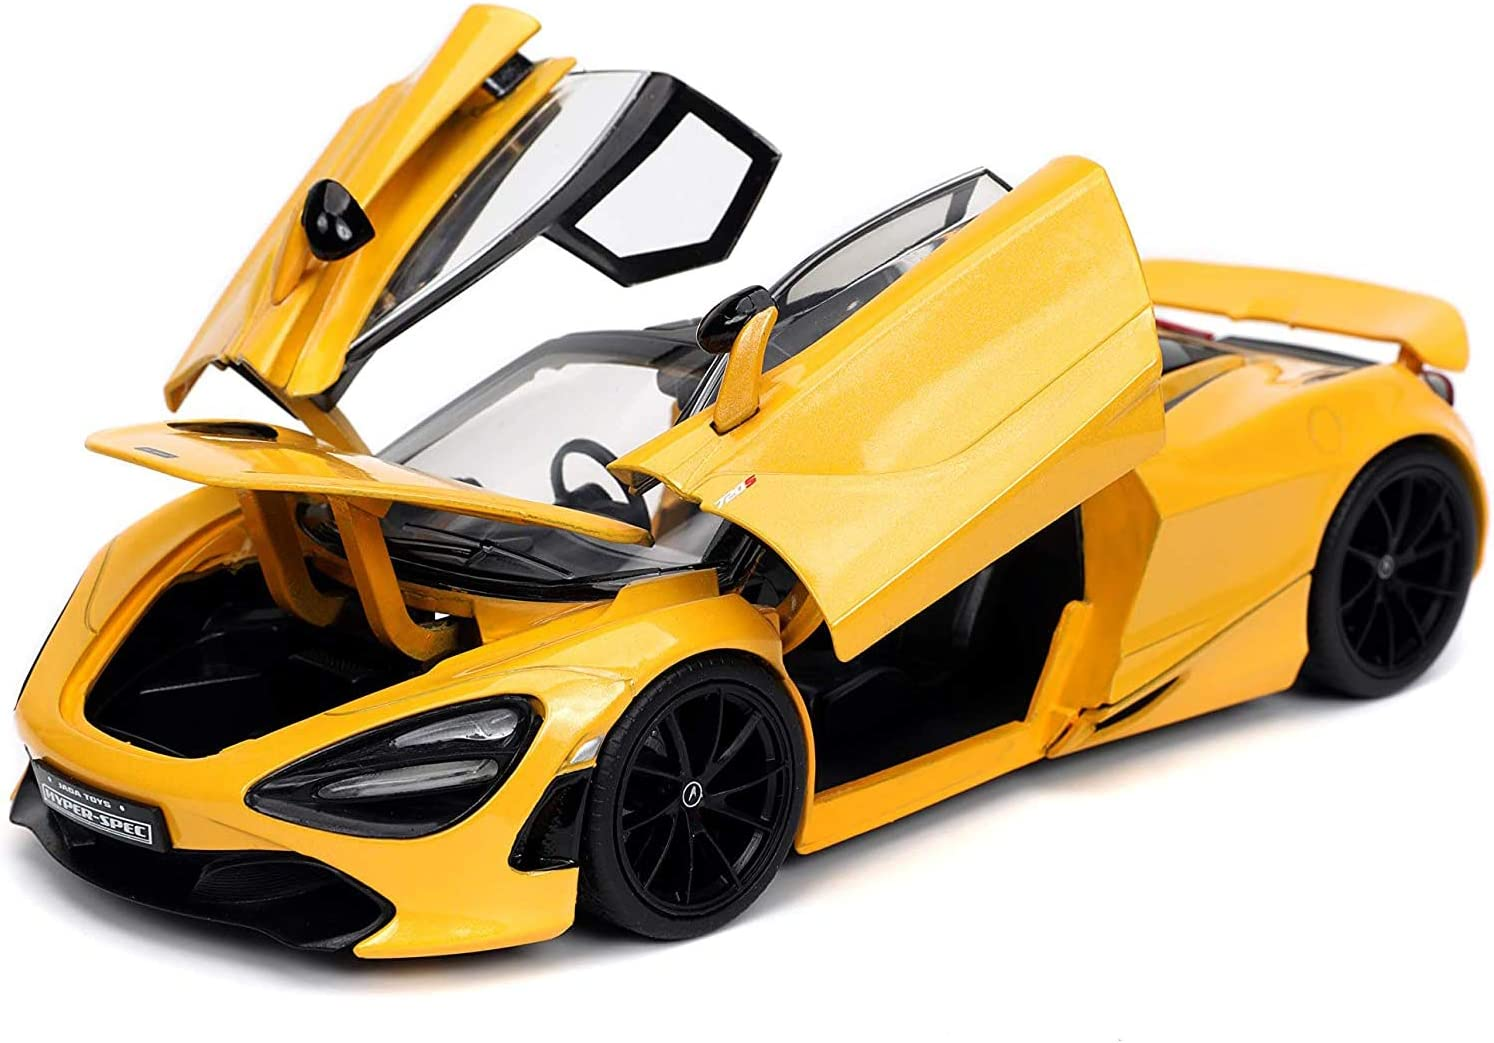 Jada Toys Hyperspec 1:24 Mclaren 720S Die-cast Car Yellow, Toys for Kids and Adults